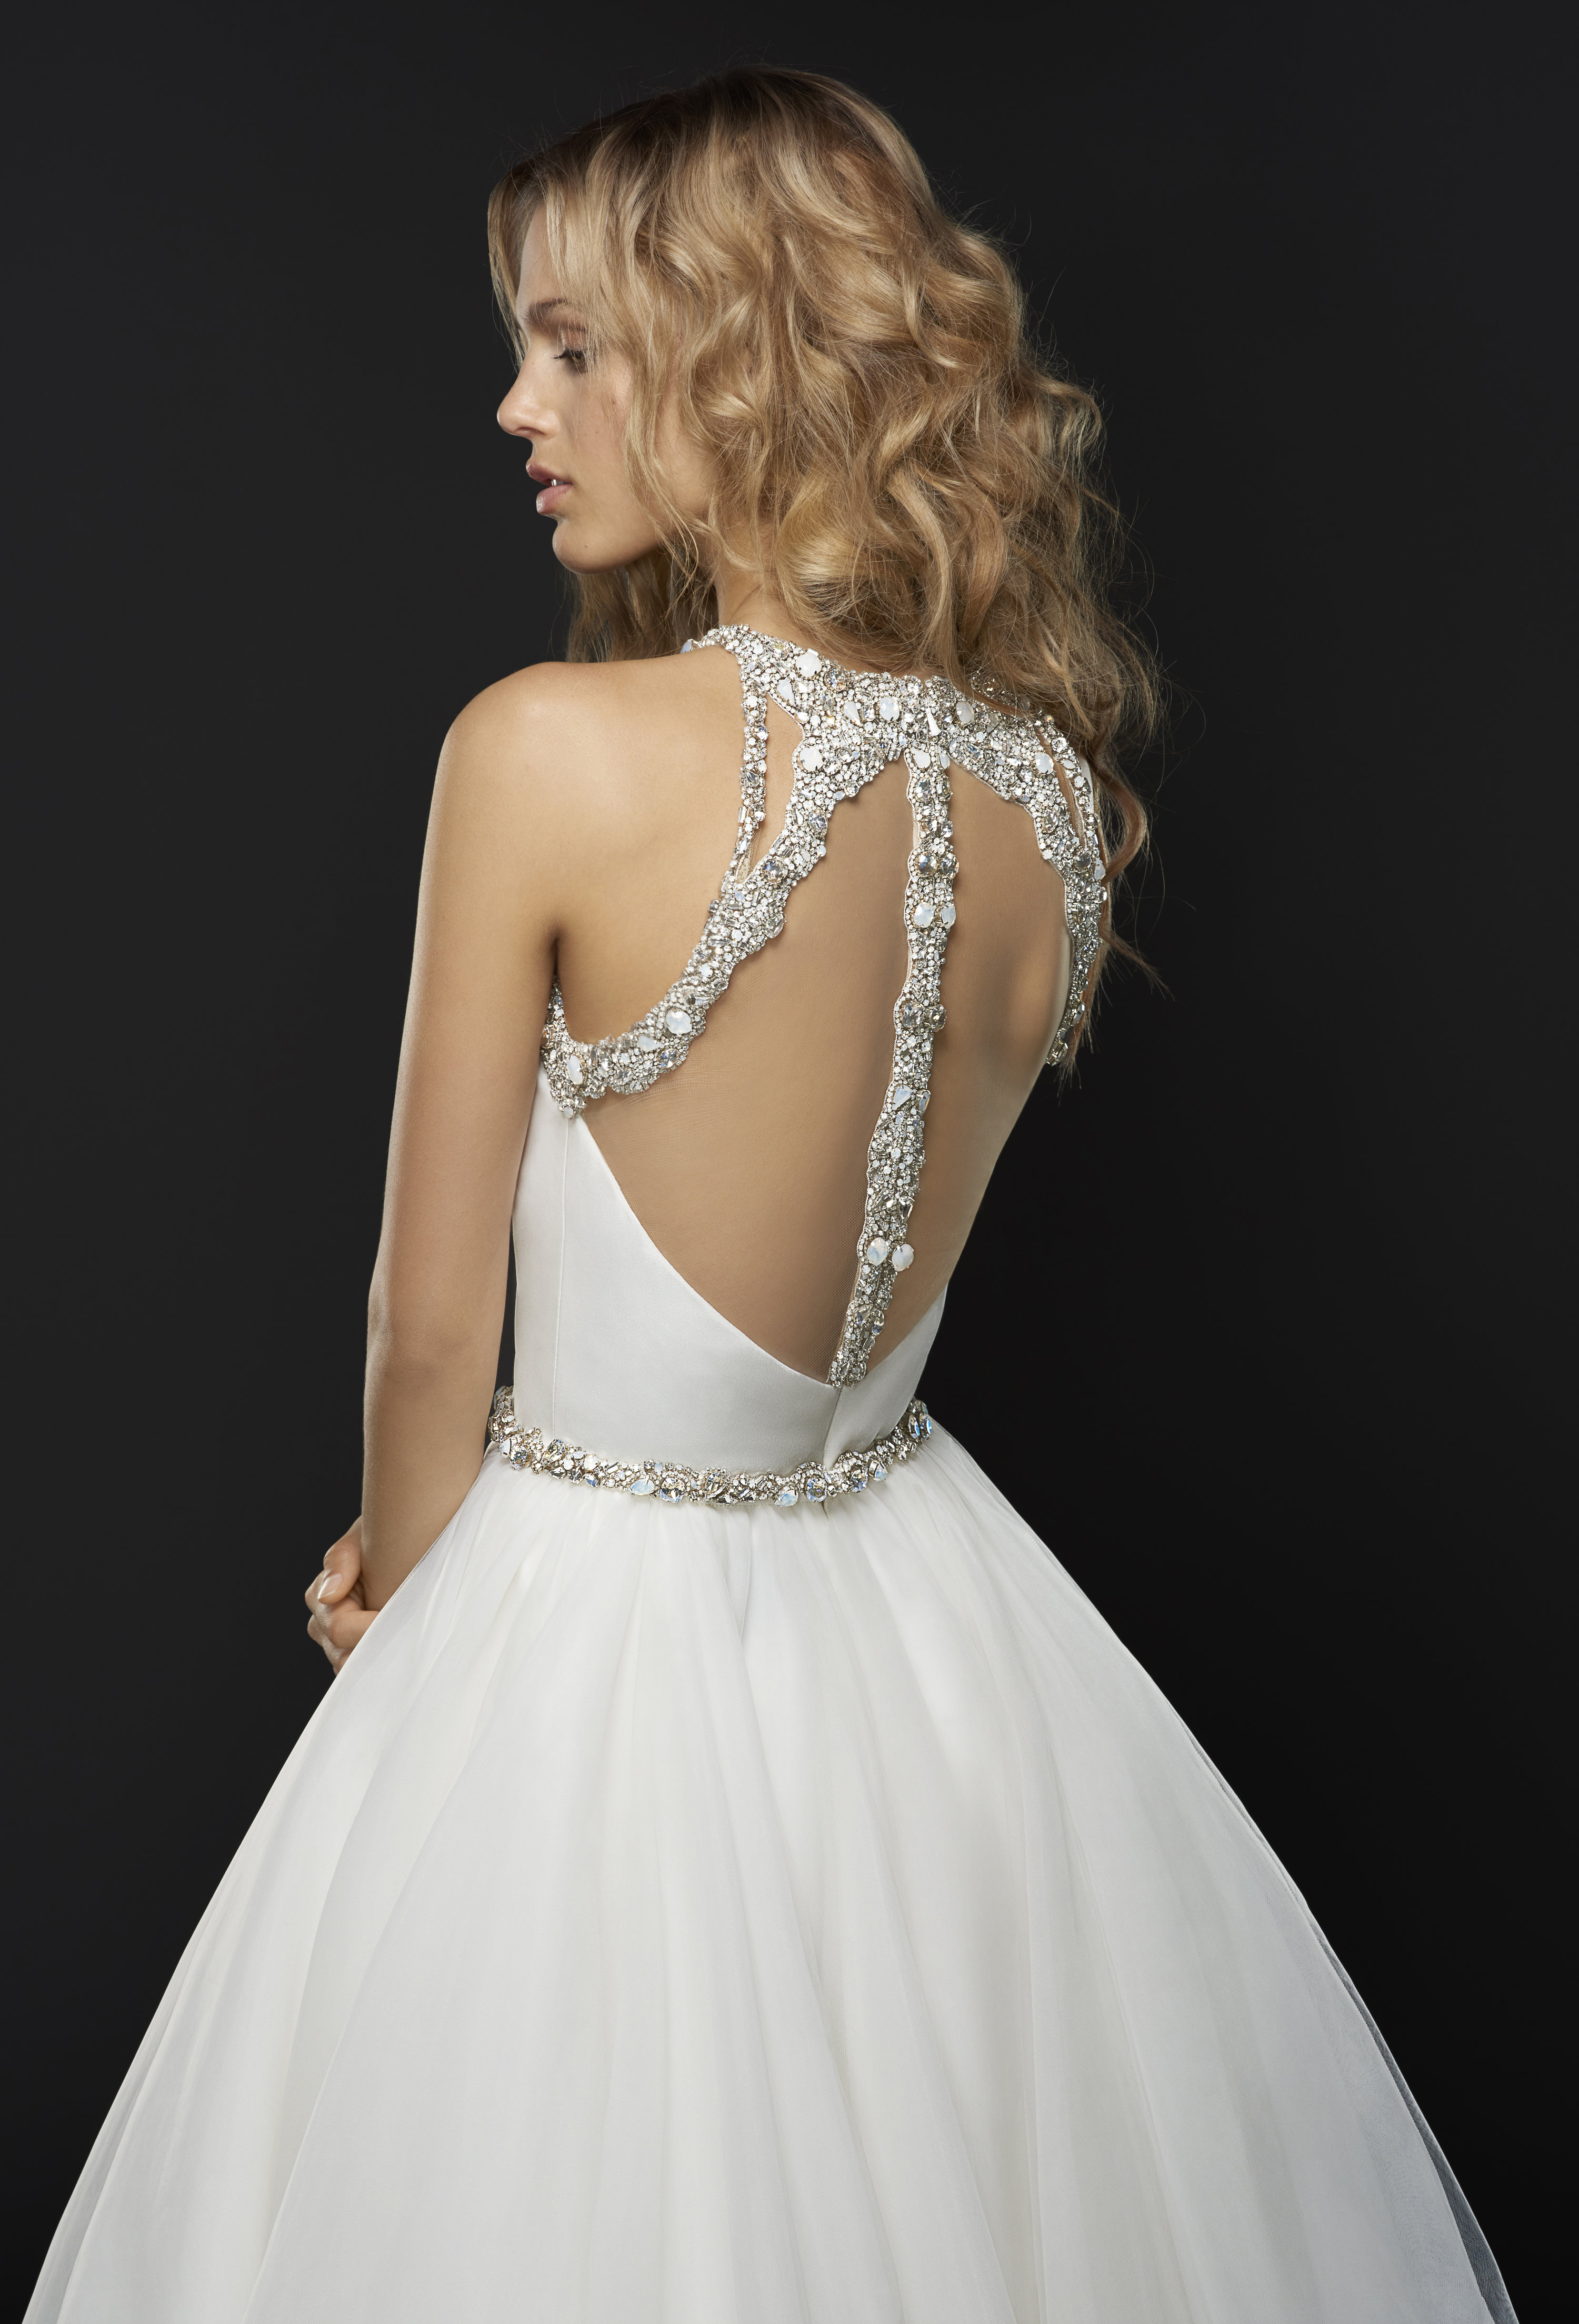 Bridal Gowns and Wedding Dresses by JLM Couture - Style 6750 Sloane